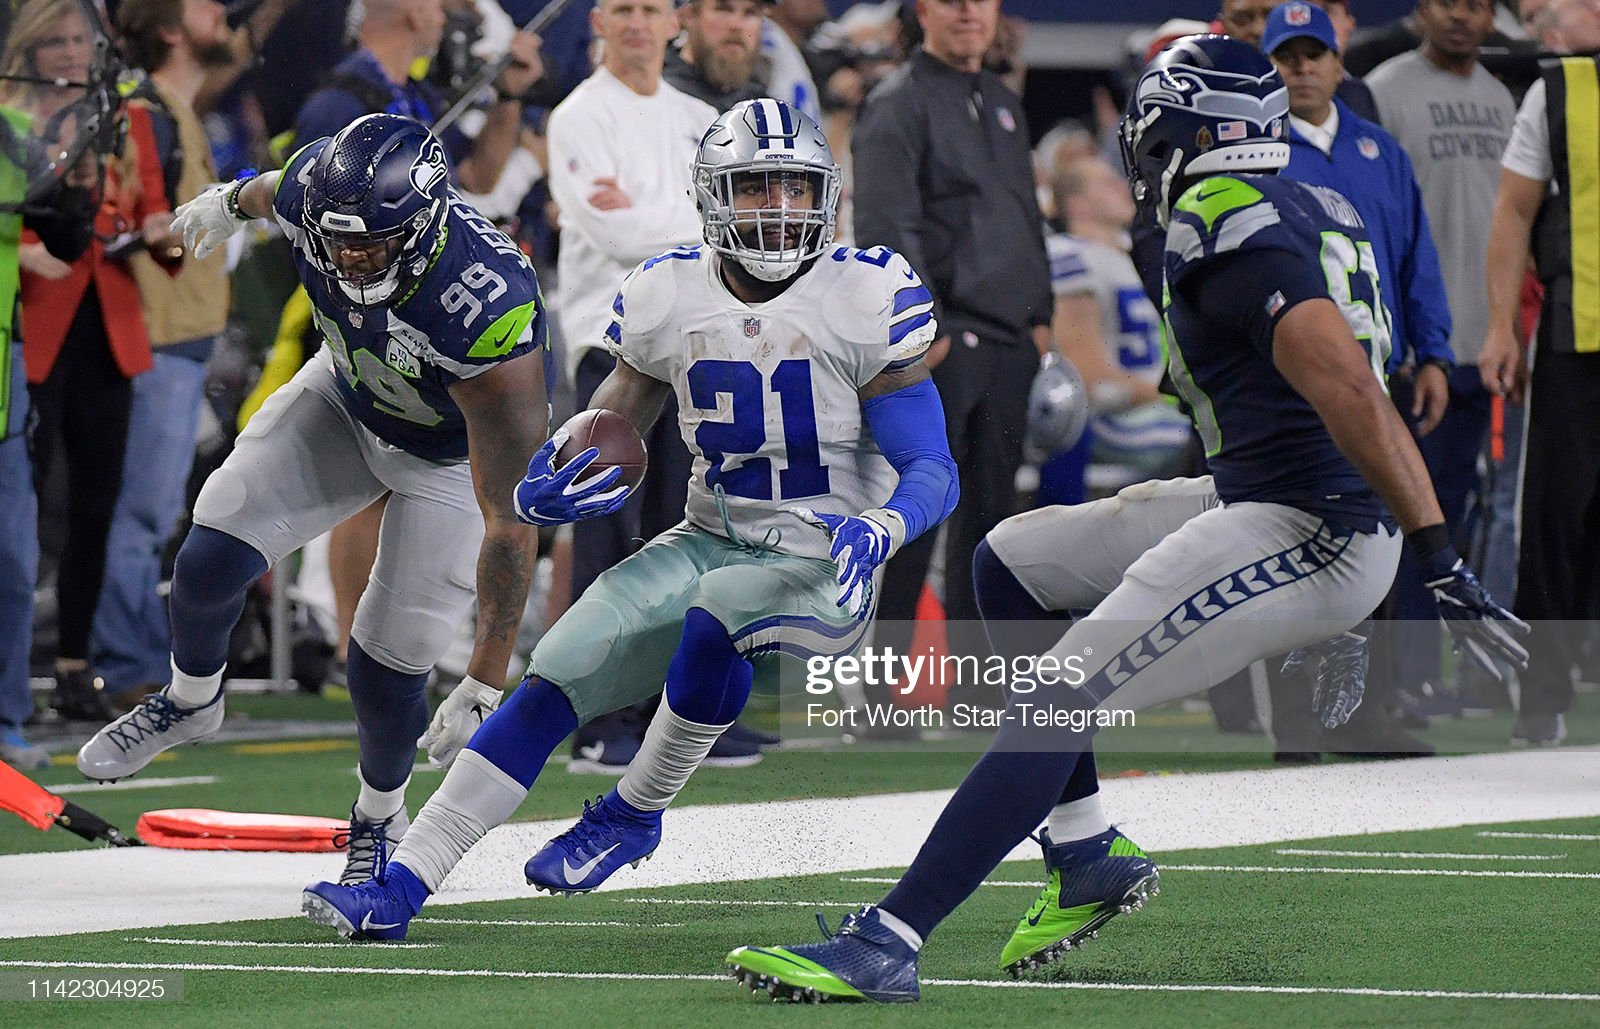 Bright soul Ezekiel Elliott will pay for the funeral of East St. Louis football star : News Photo